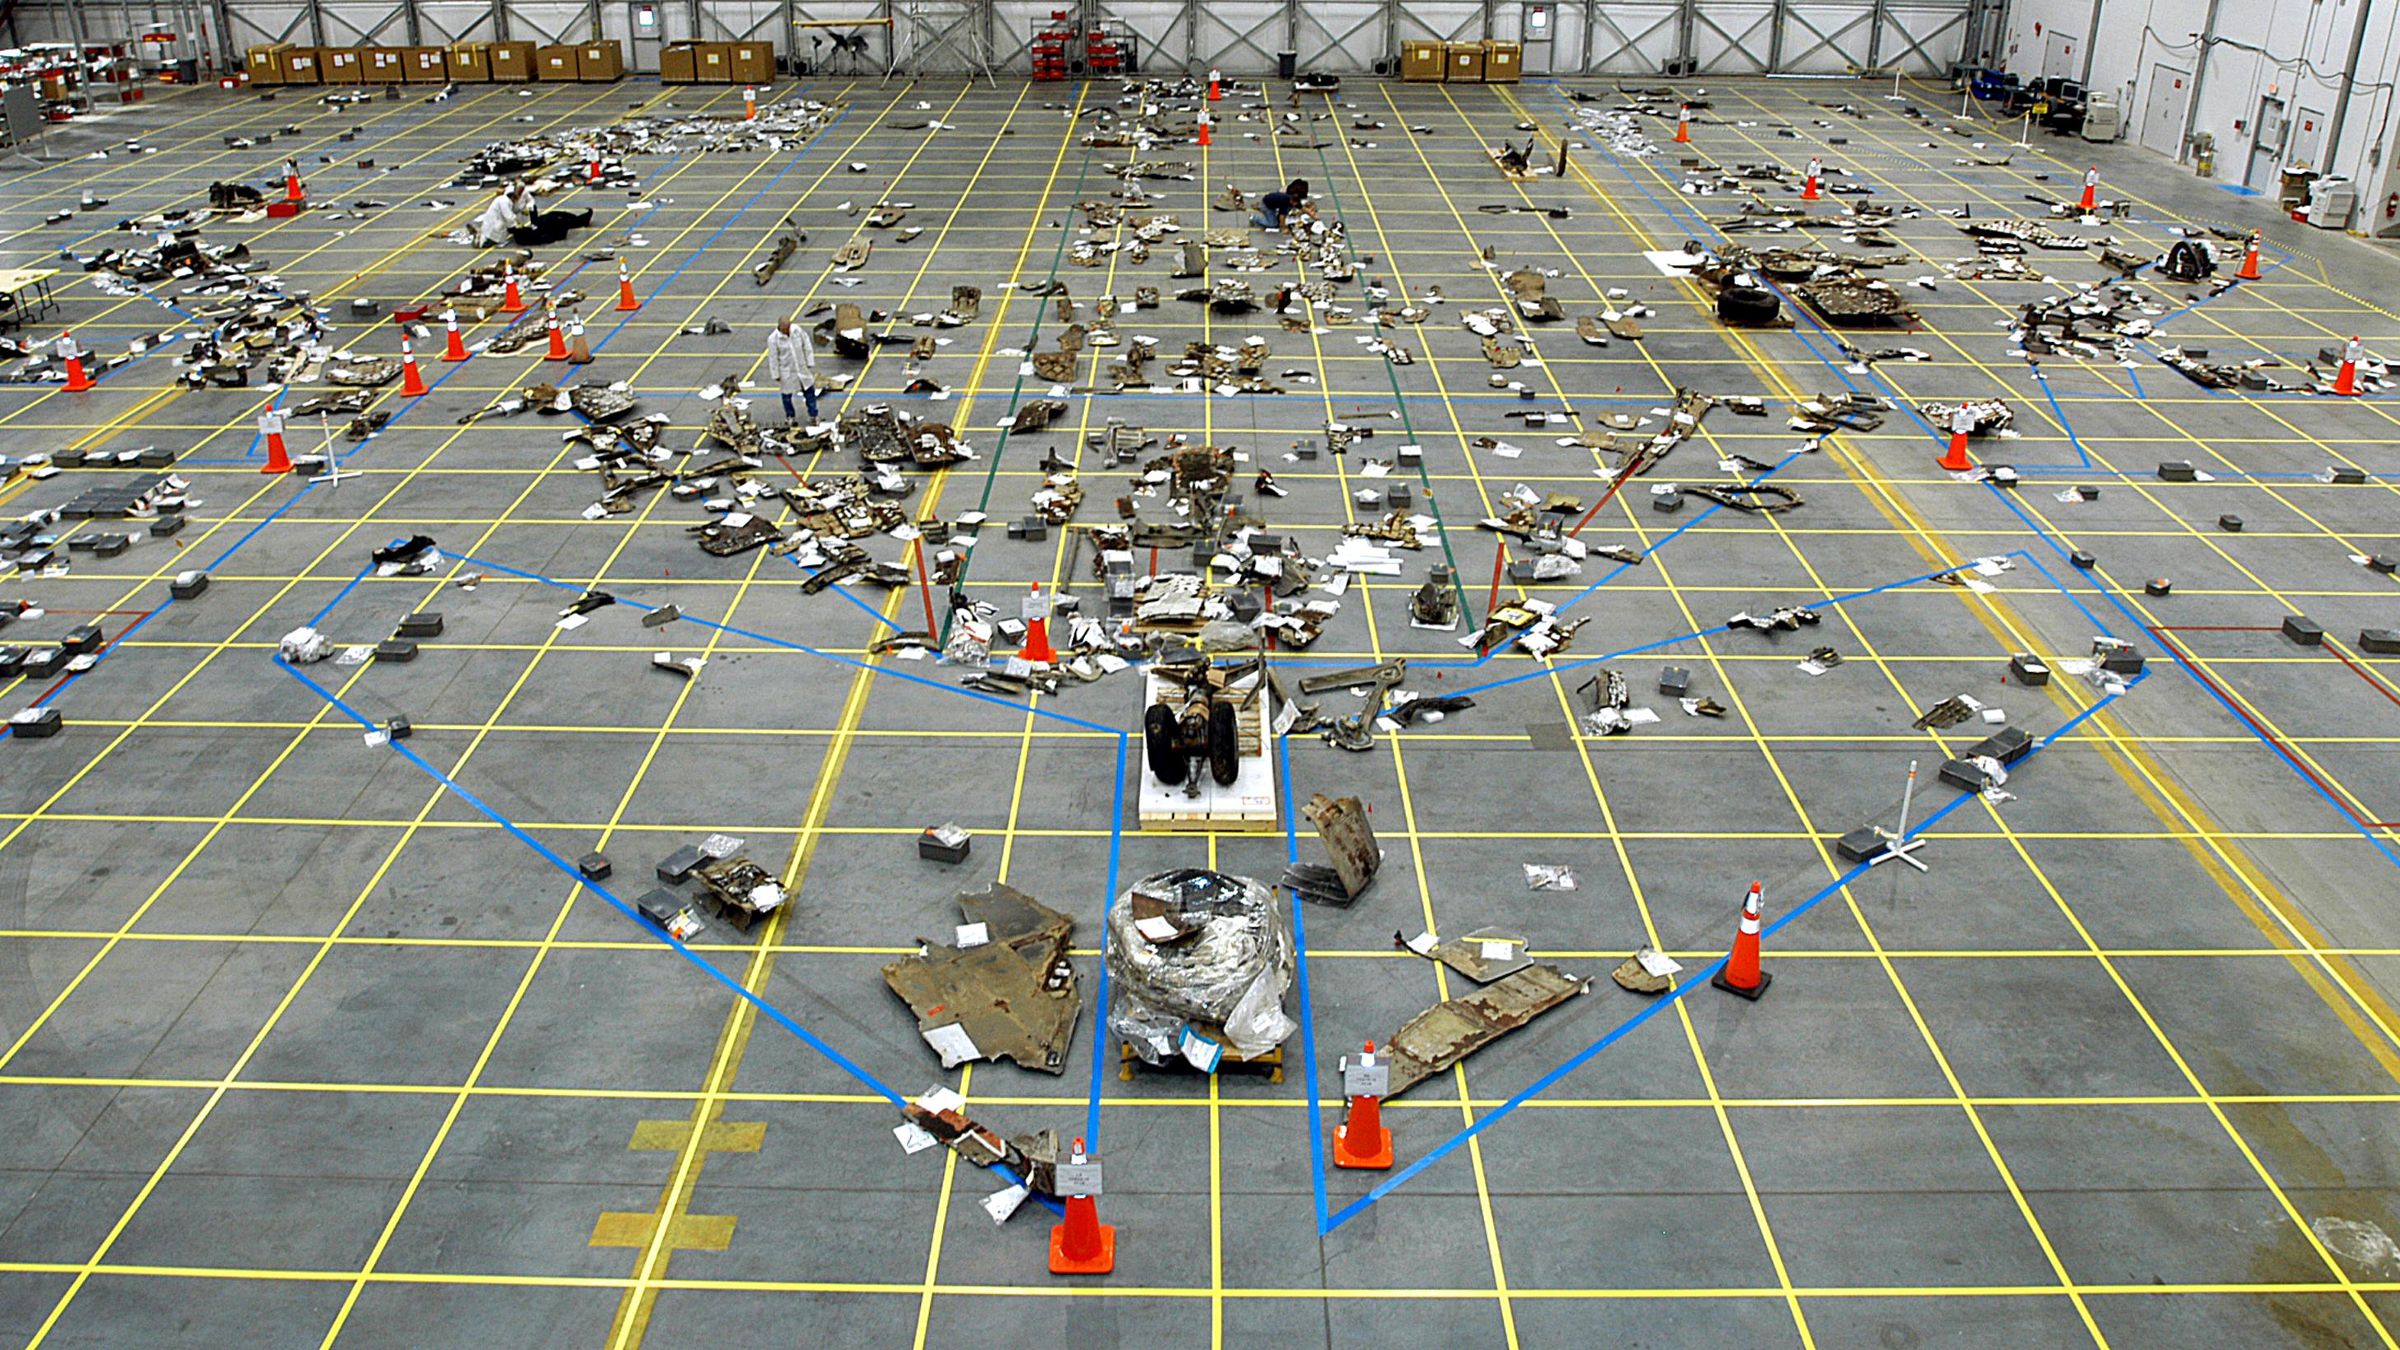 In the RLV Hangar, the floor grid is marked with a growing number of pieces of Columbia debris in this NASA handout photo dated March 13, 2003. The Columbia Reconstruction Project Team will attempt to reconstruct the orbiter as part of the investigation into the accident that caused the destruction of Columbia and loss of its crew as it returned to Earth on mission STS-107.